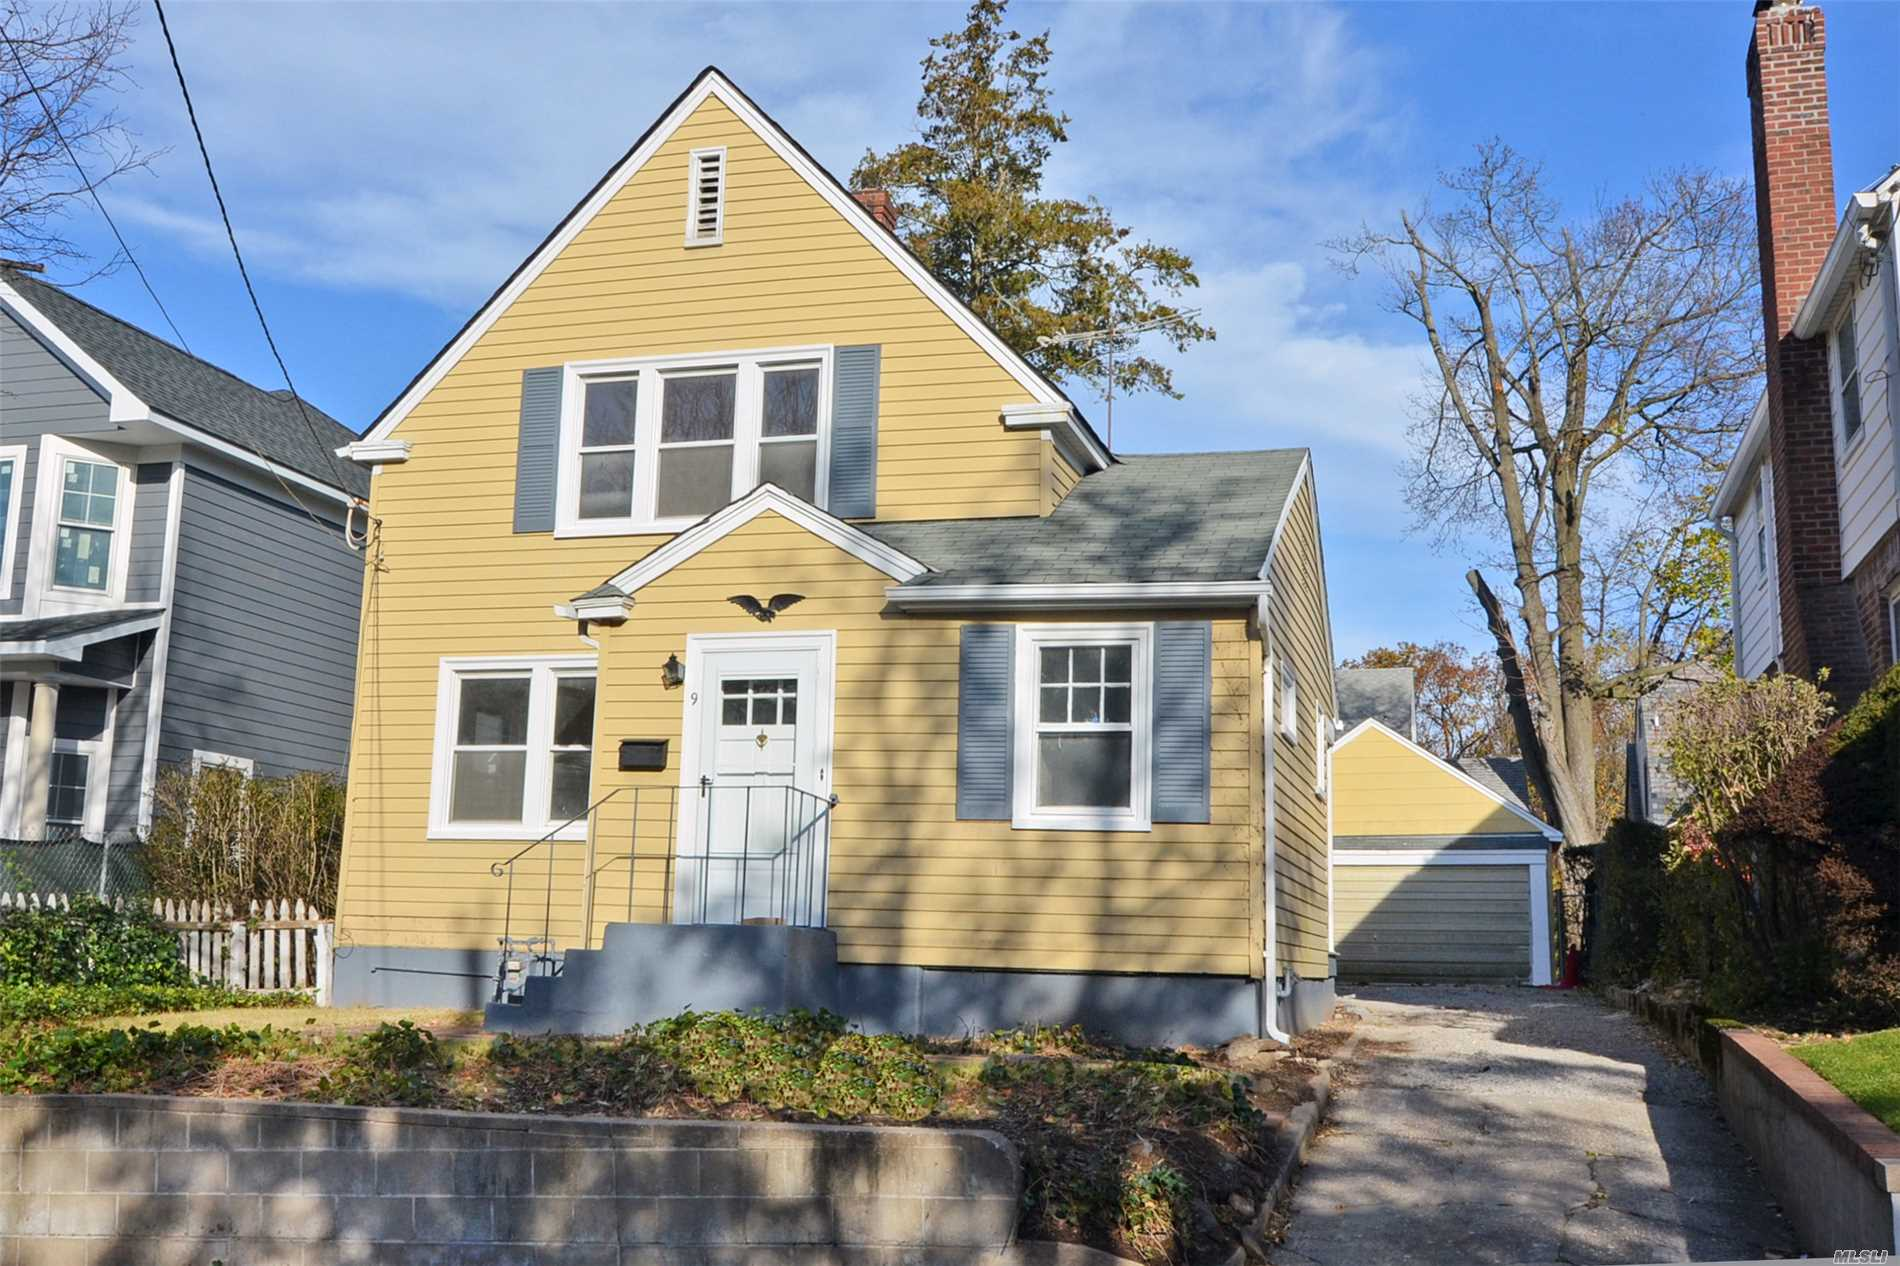 Charming Colonial Home Set In Prime Block In The Park Section. Newly Refinished Hardwood Floors. Newly Painted Interior. Short Distance To Middle School, High School, Town And Lirr.